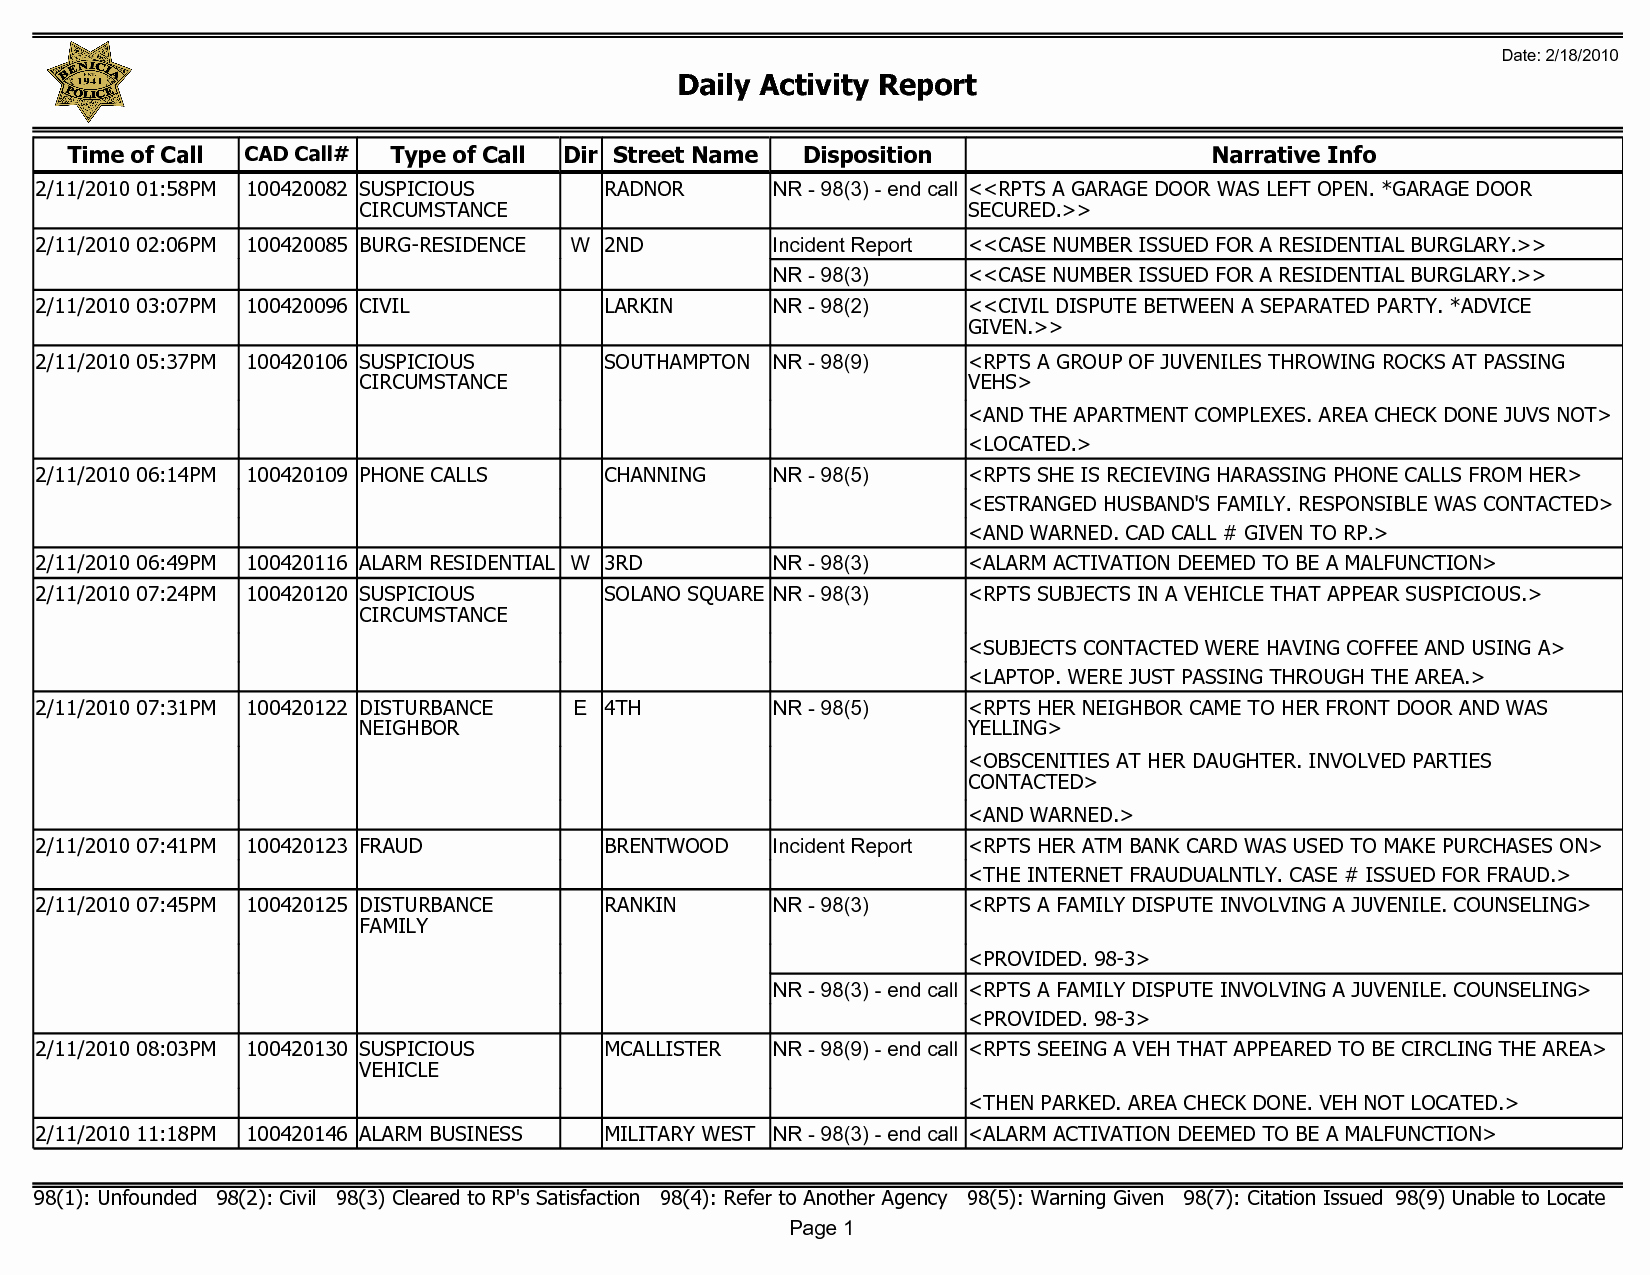 Security Guard Daily Activity Report Template New Employee Daily Activity Report Template Unbelievable